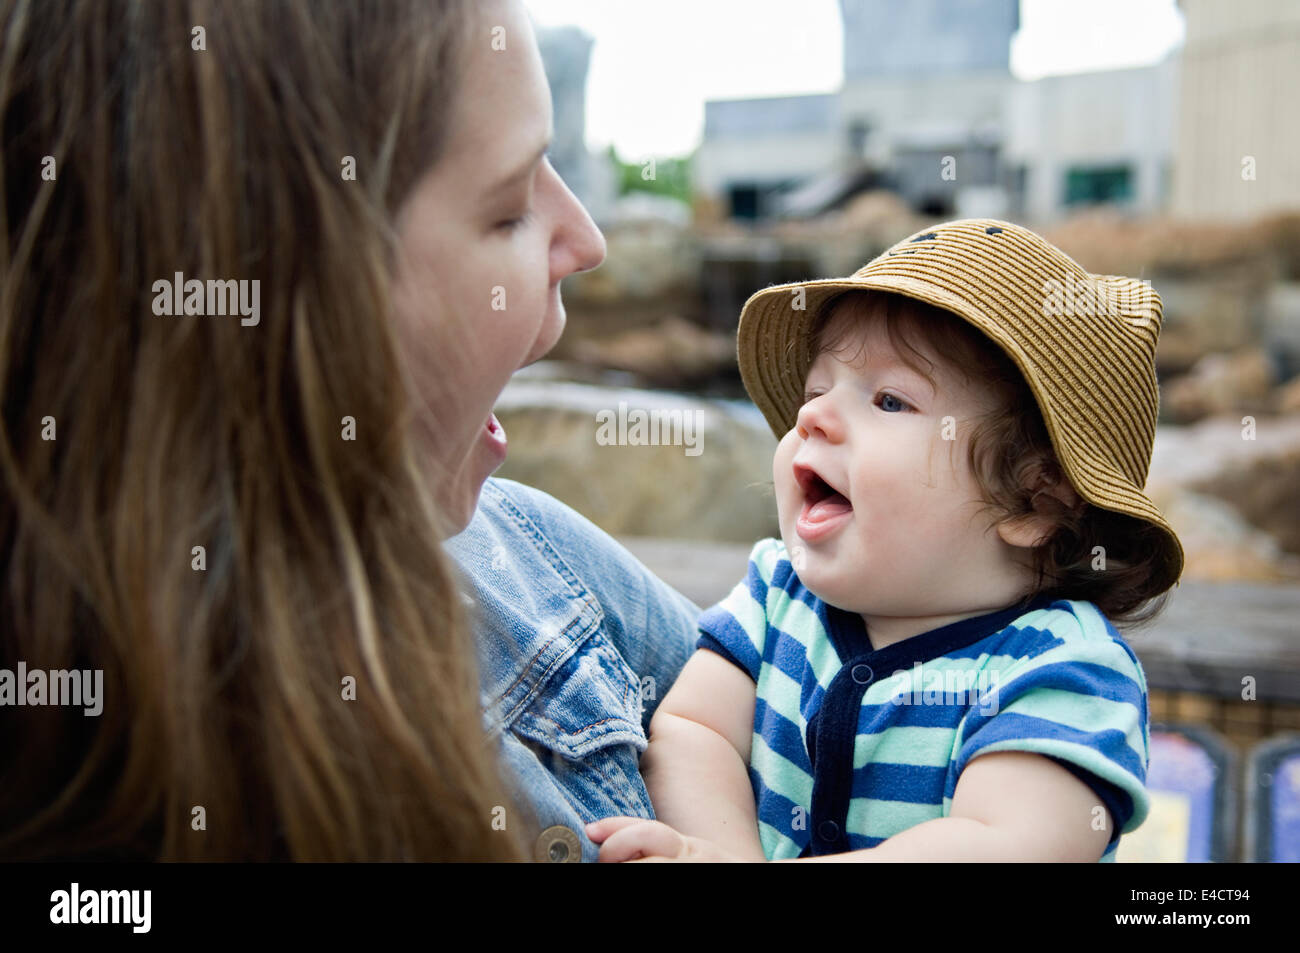 Six Month Old Baby Boy Interacting with His Mom - Stock Image